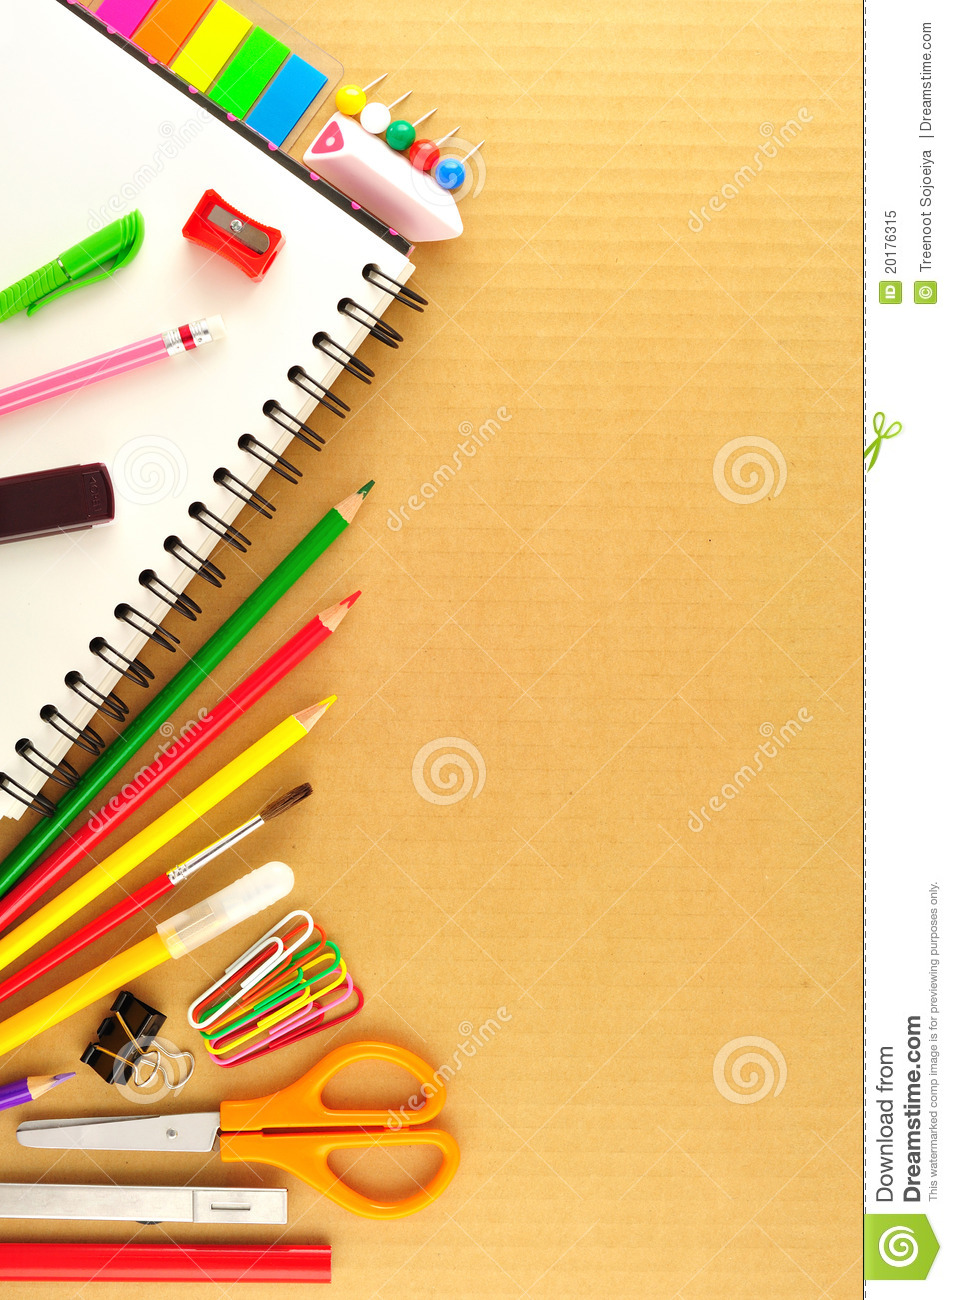 View Of The Office Tools Royalty Free Stock Photo - Image: 20176315